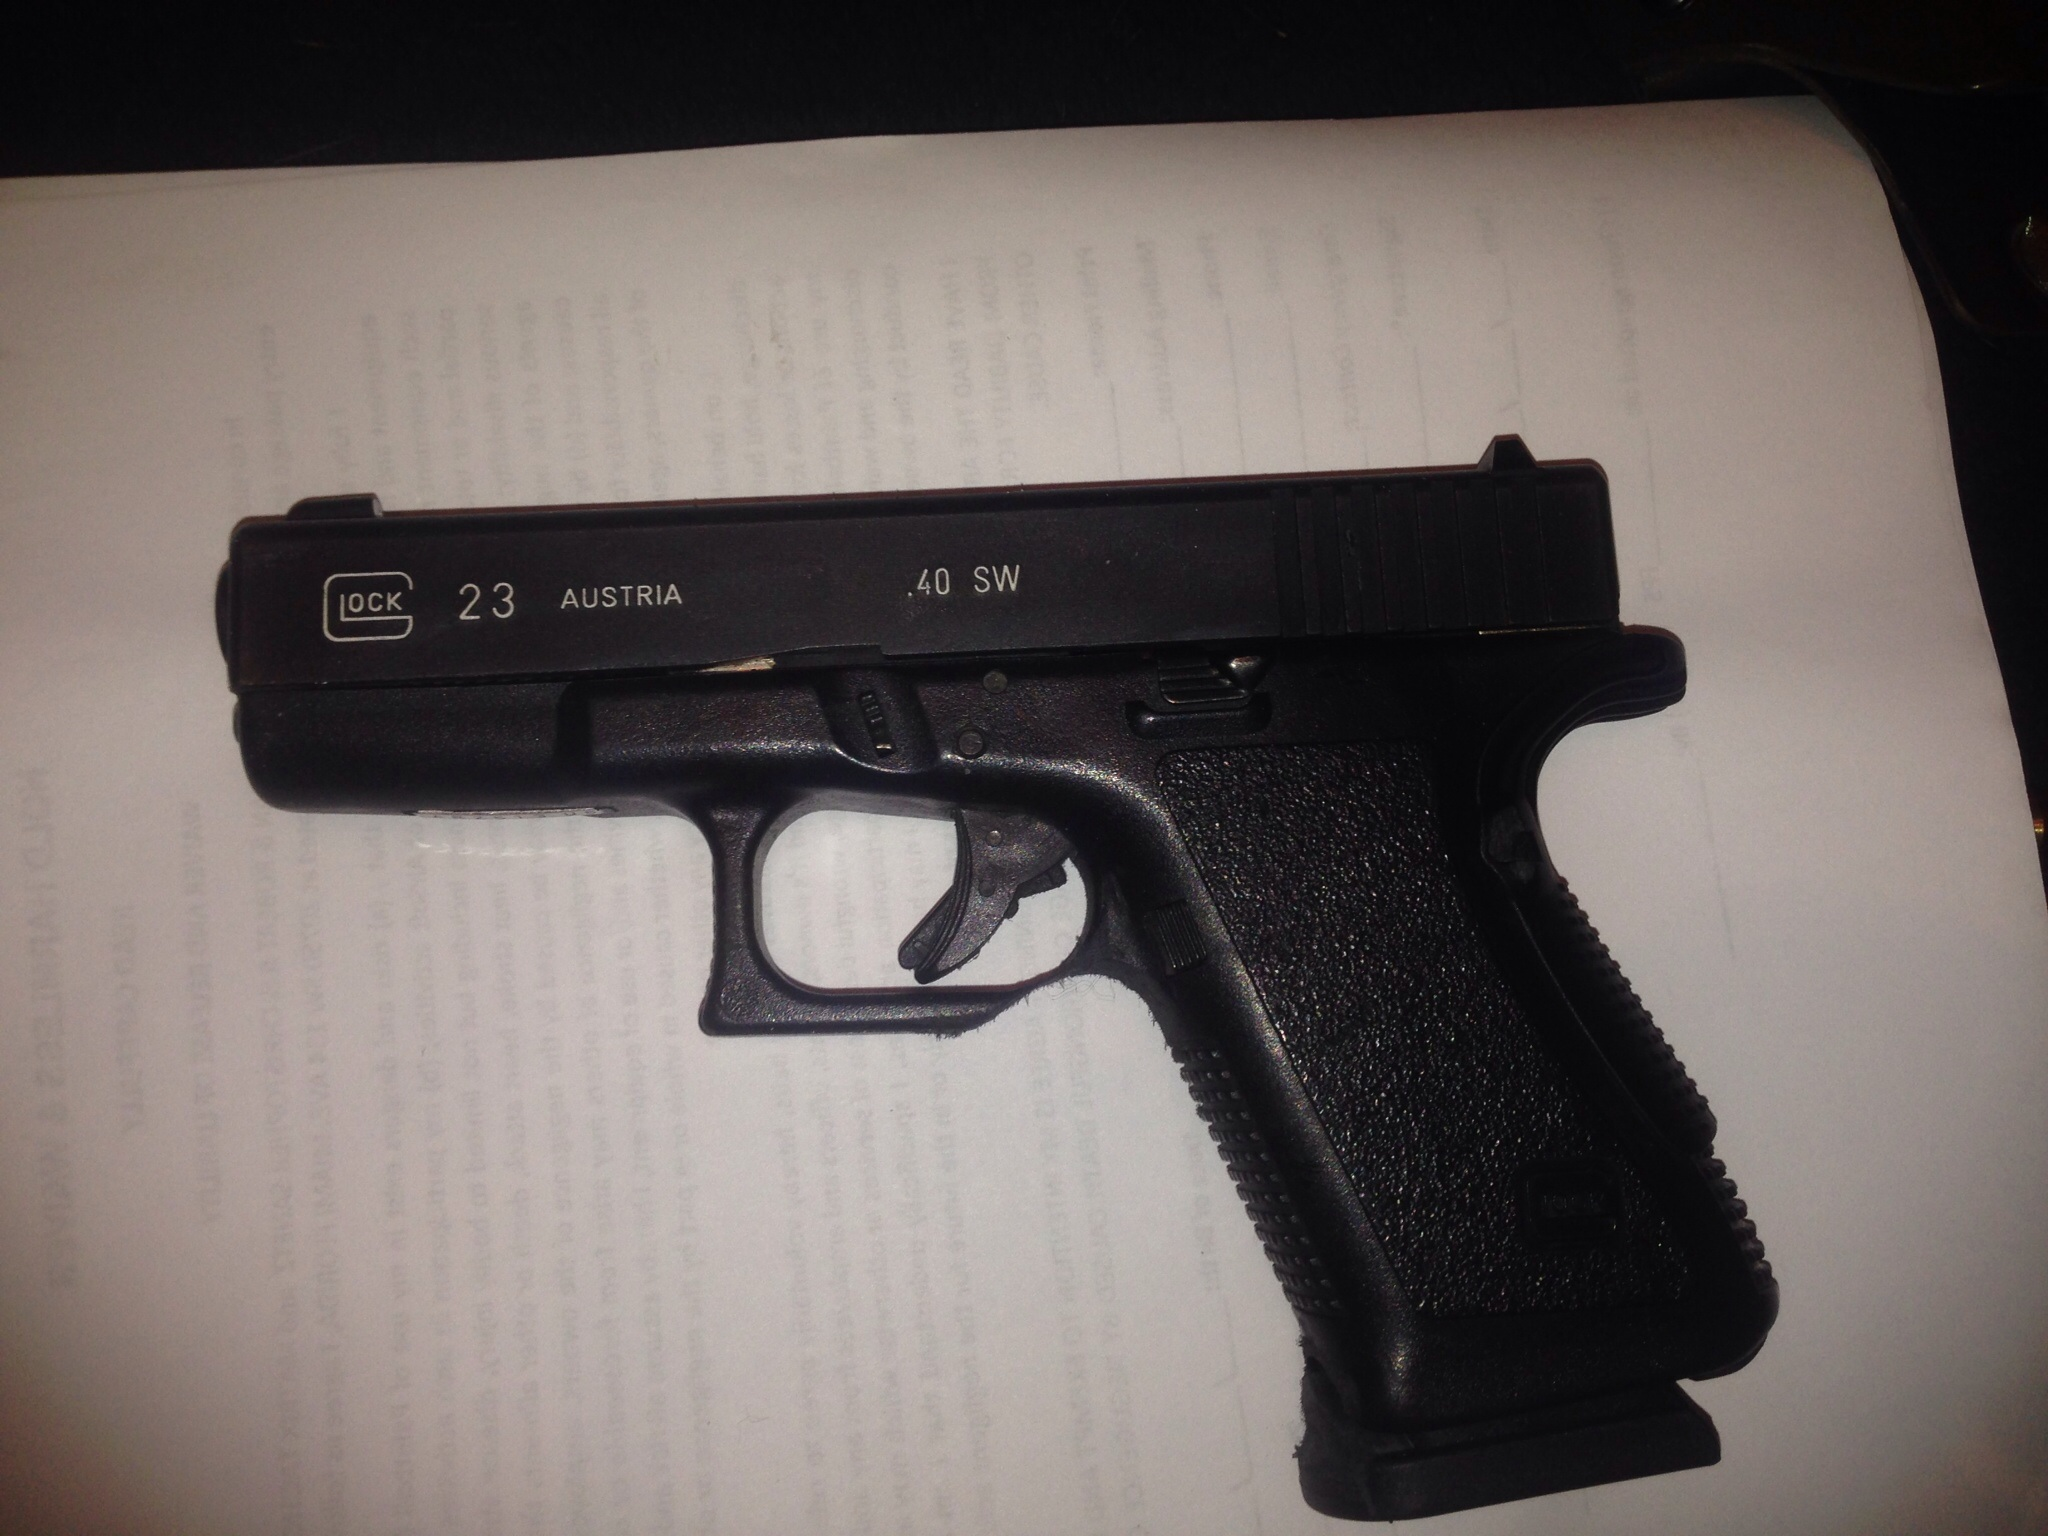 Replacement frame from Glock? | The Leading Glock Forum and ...